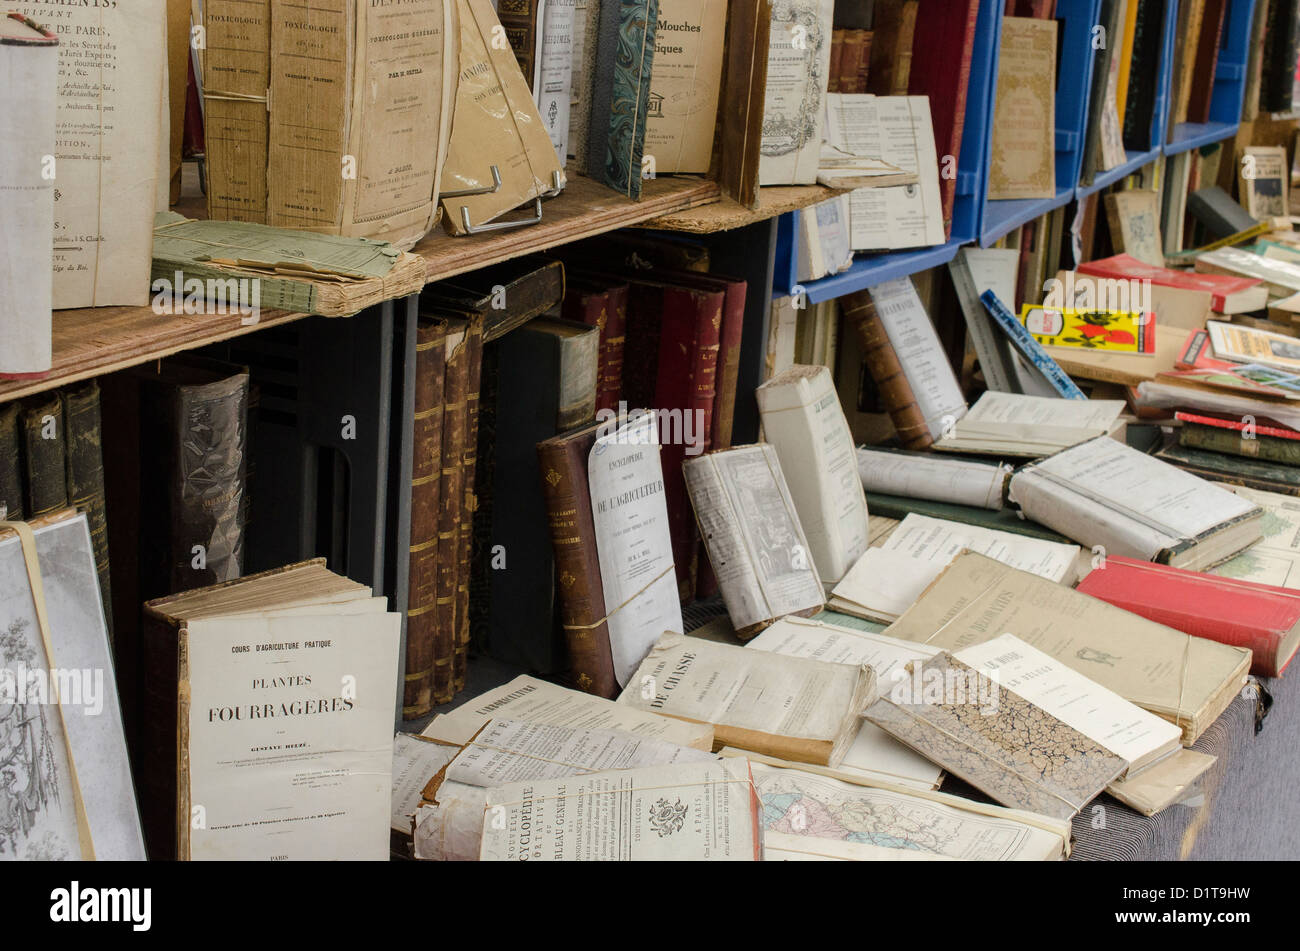 Books on secondhand market stall - Stock Image